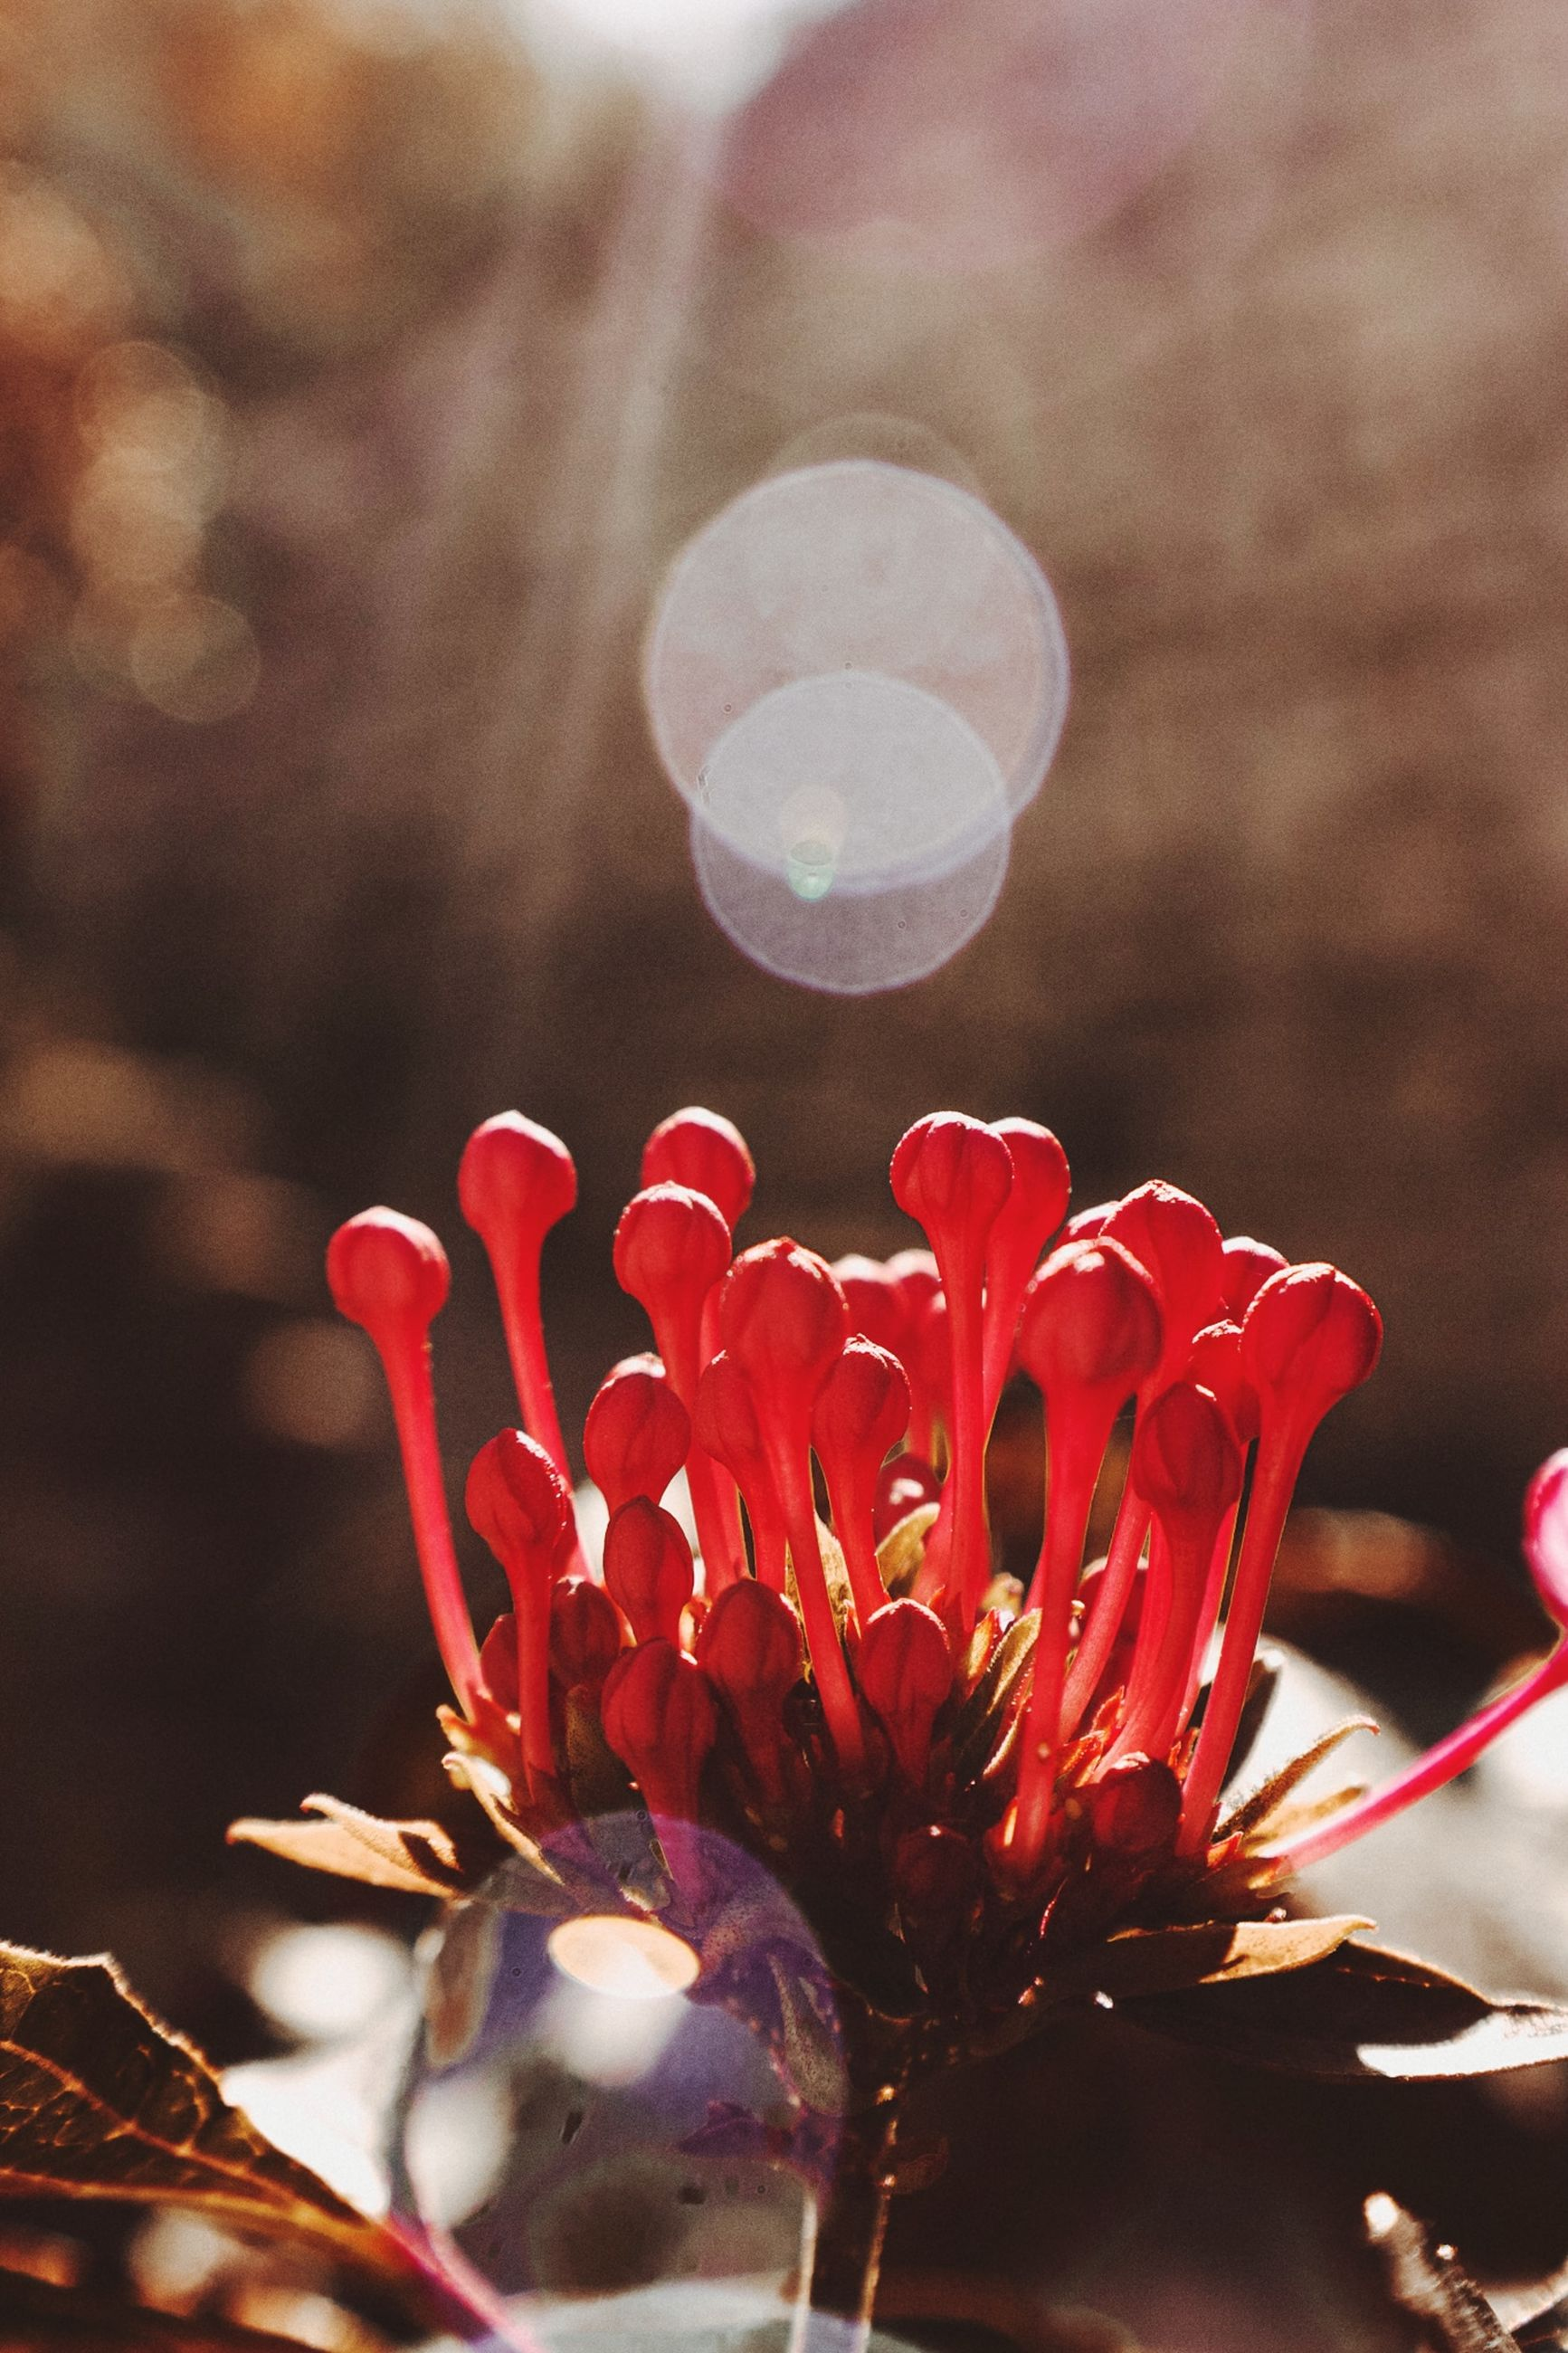 flower, flowering plant, plant, vulnerability, fragility, freshness, beauty in nature, close-up, red, petal, inflorescence, growth, flower head, focus on foreground, nature, no people, lens flare, selective focus, outdoors, day, pollen